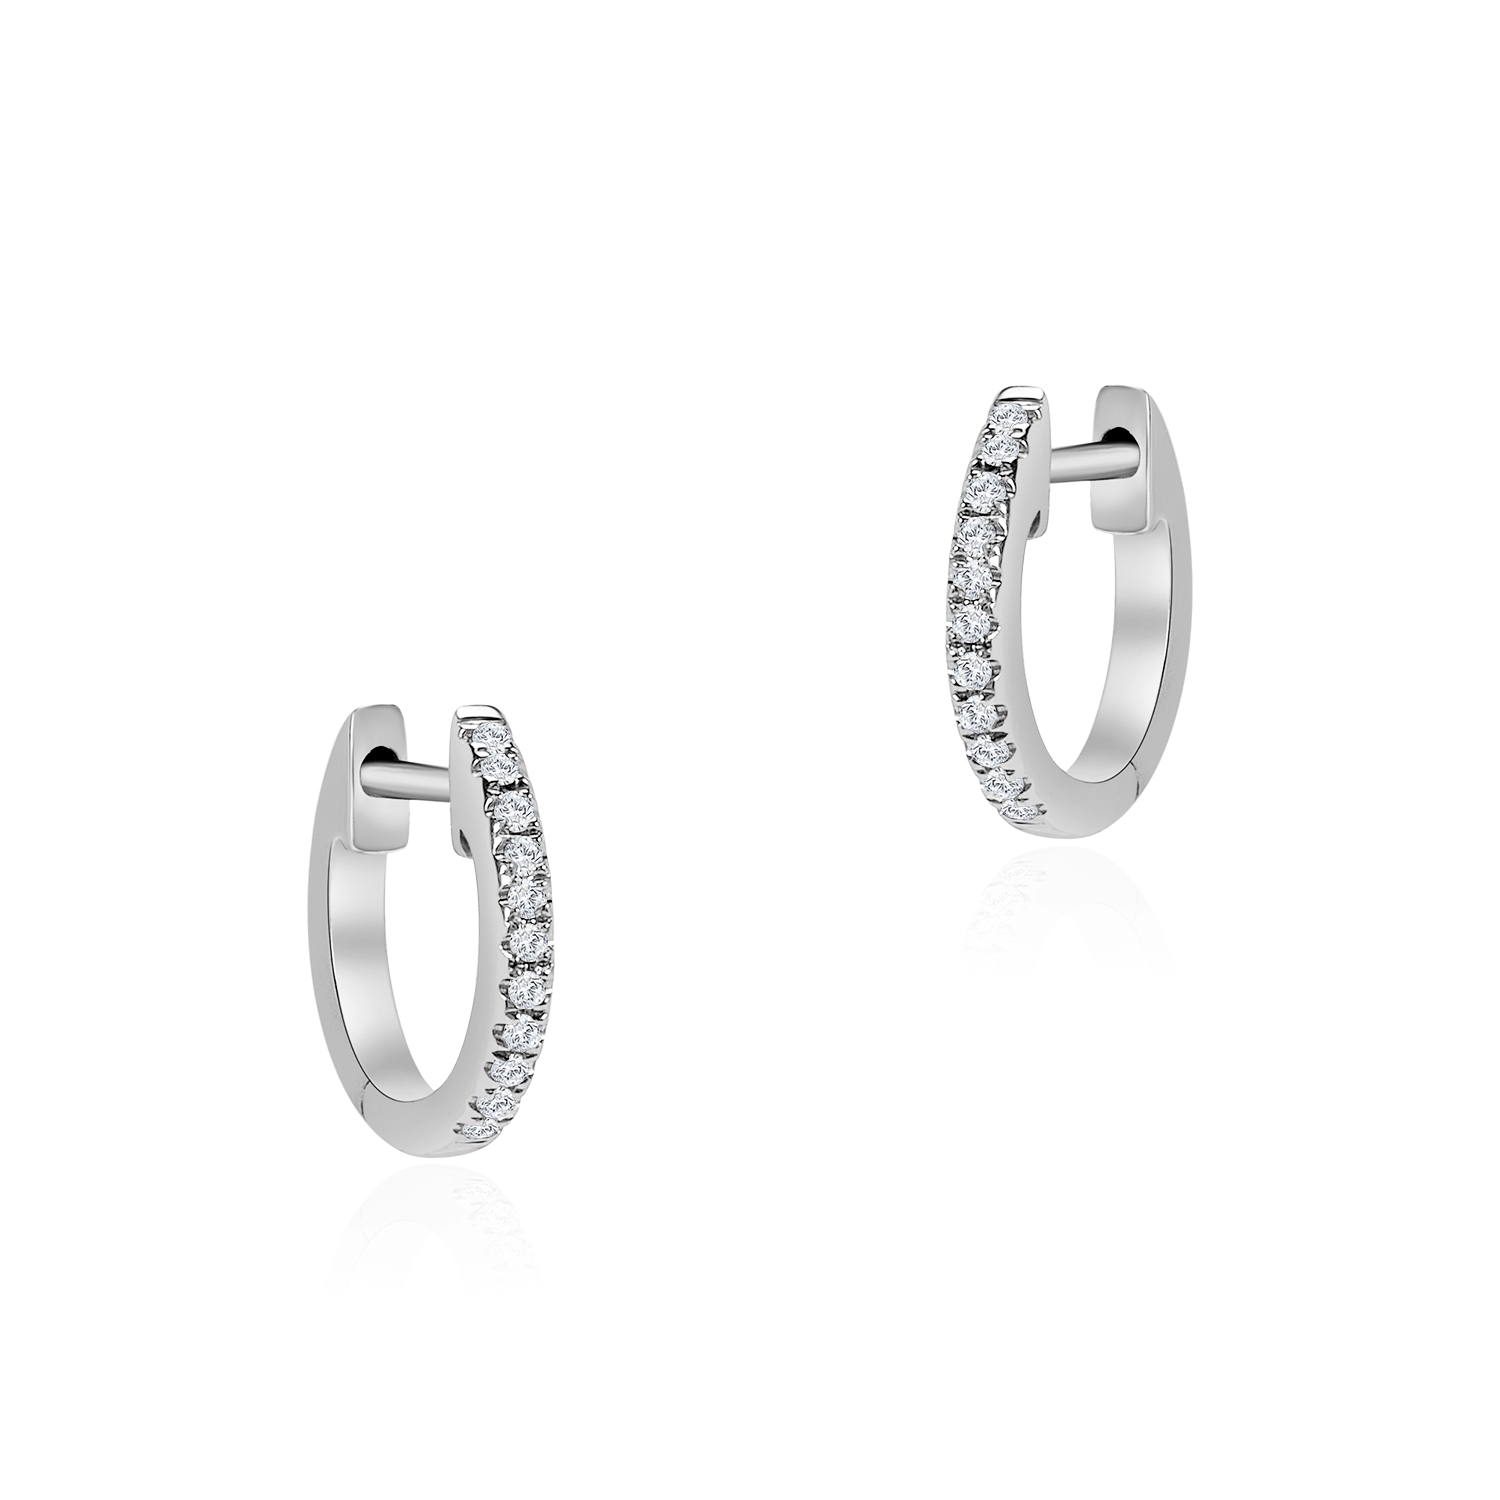 Starry Simplicity White Gold Diamond Hoop Earrings